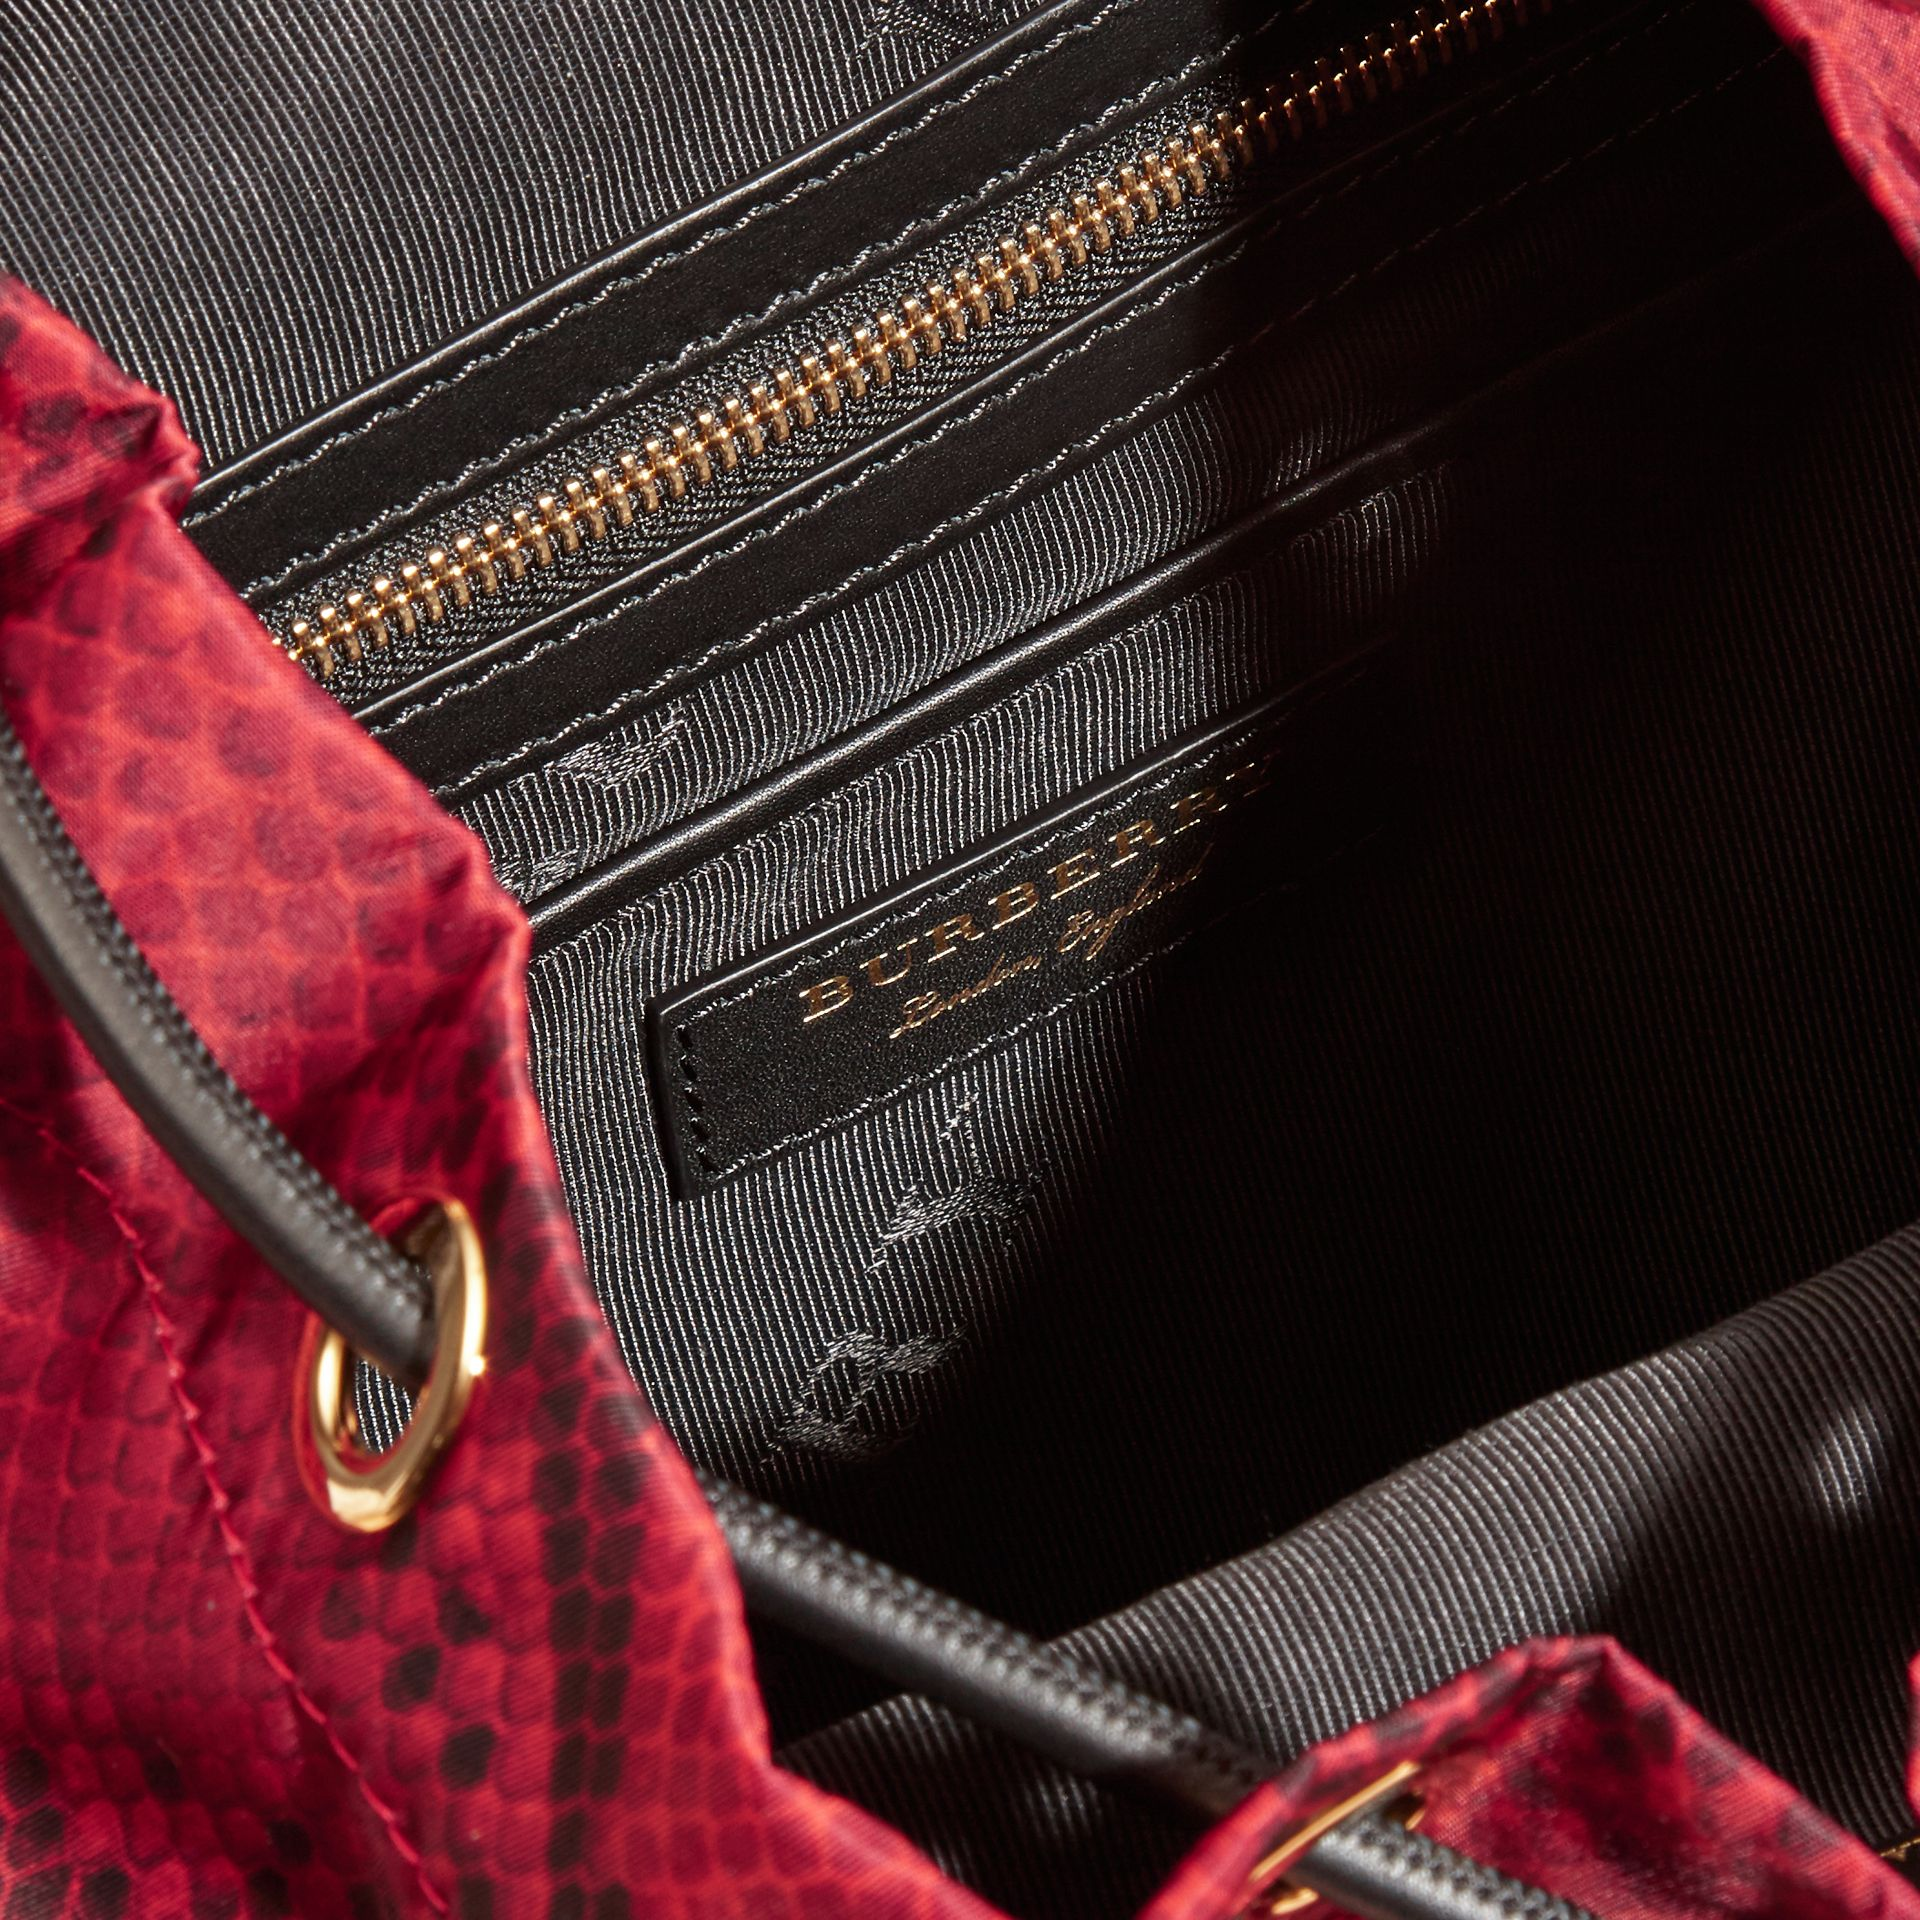 Burgundy red The Medium Rucksack in Python Print Nylon and Leather Burgundy Red - gallery image 5